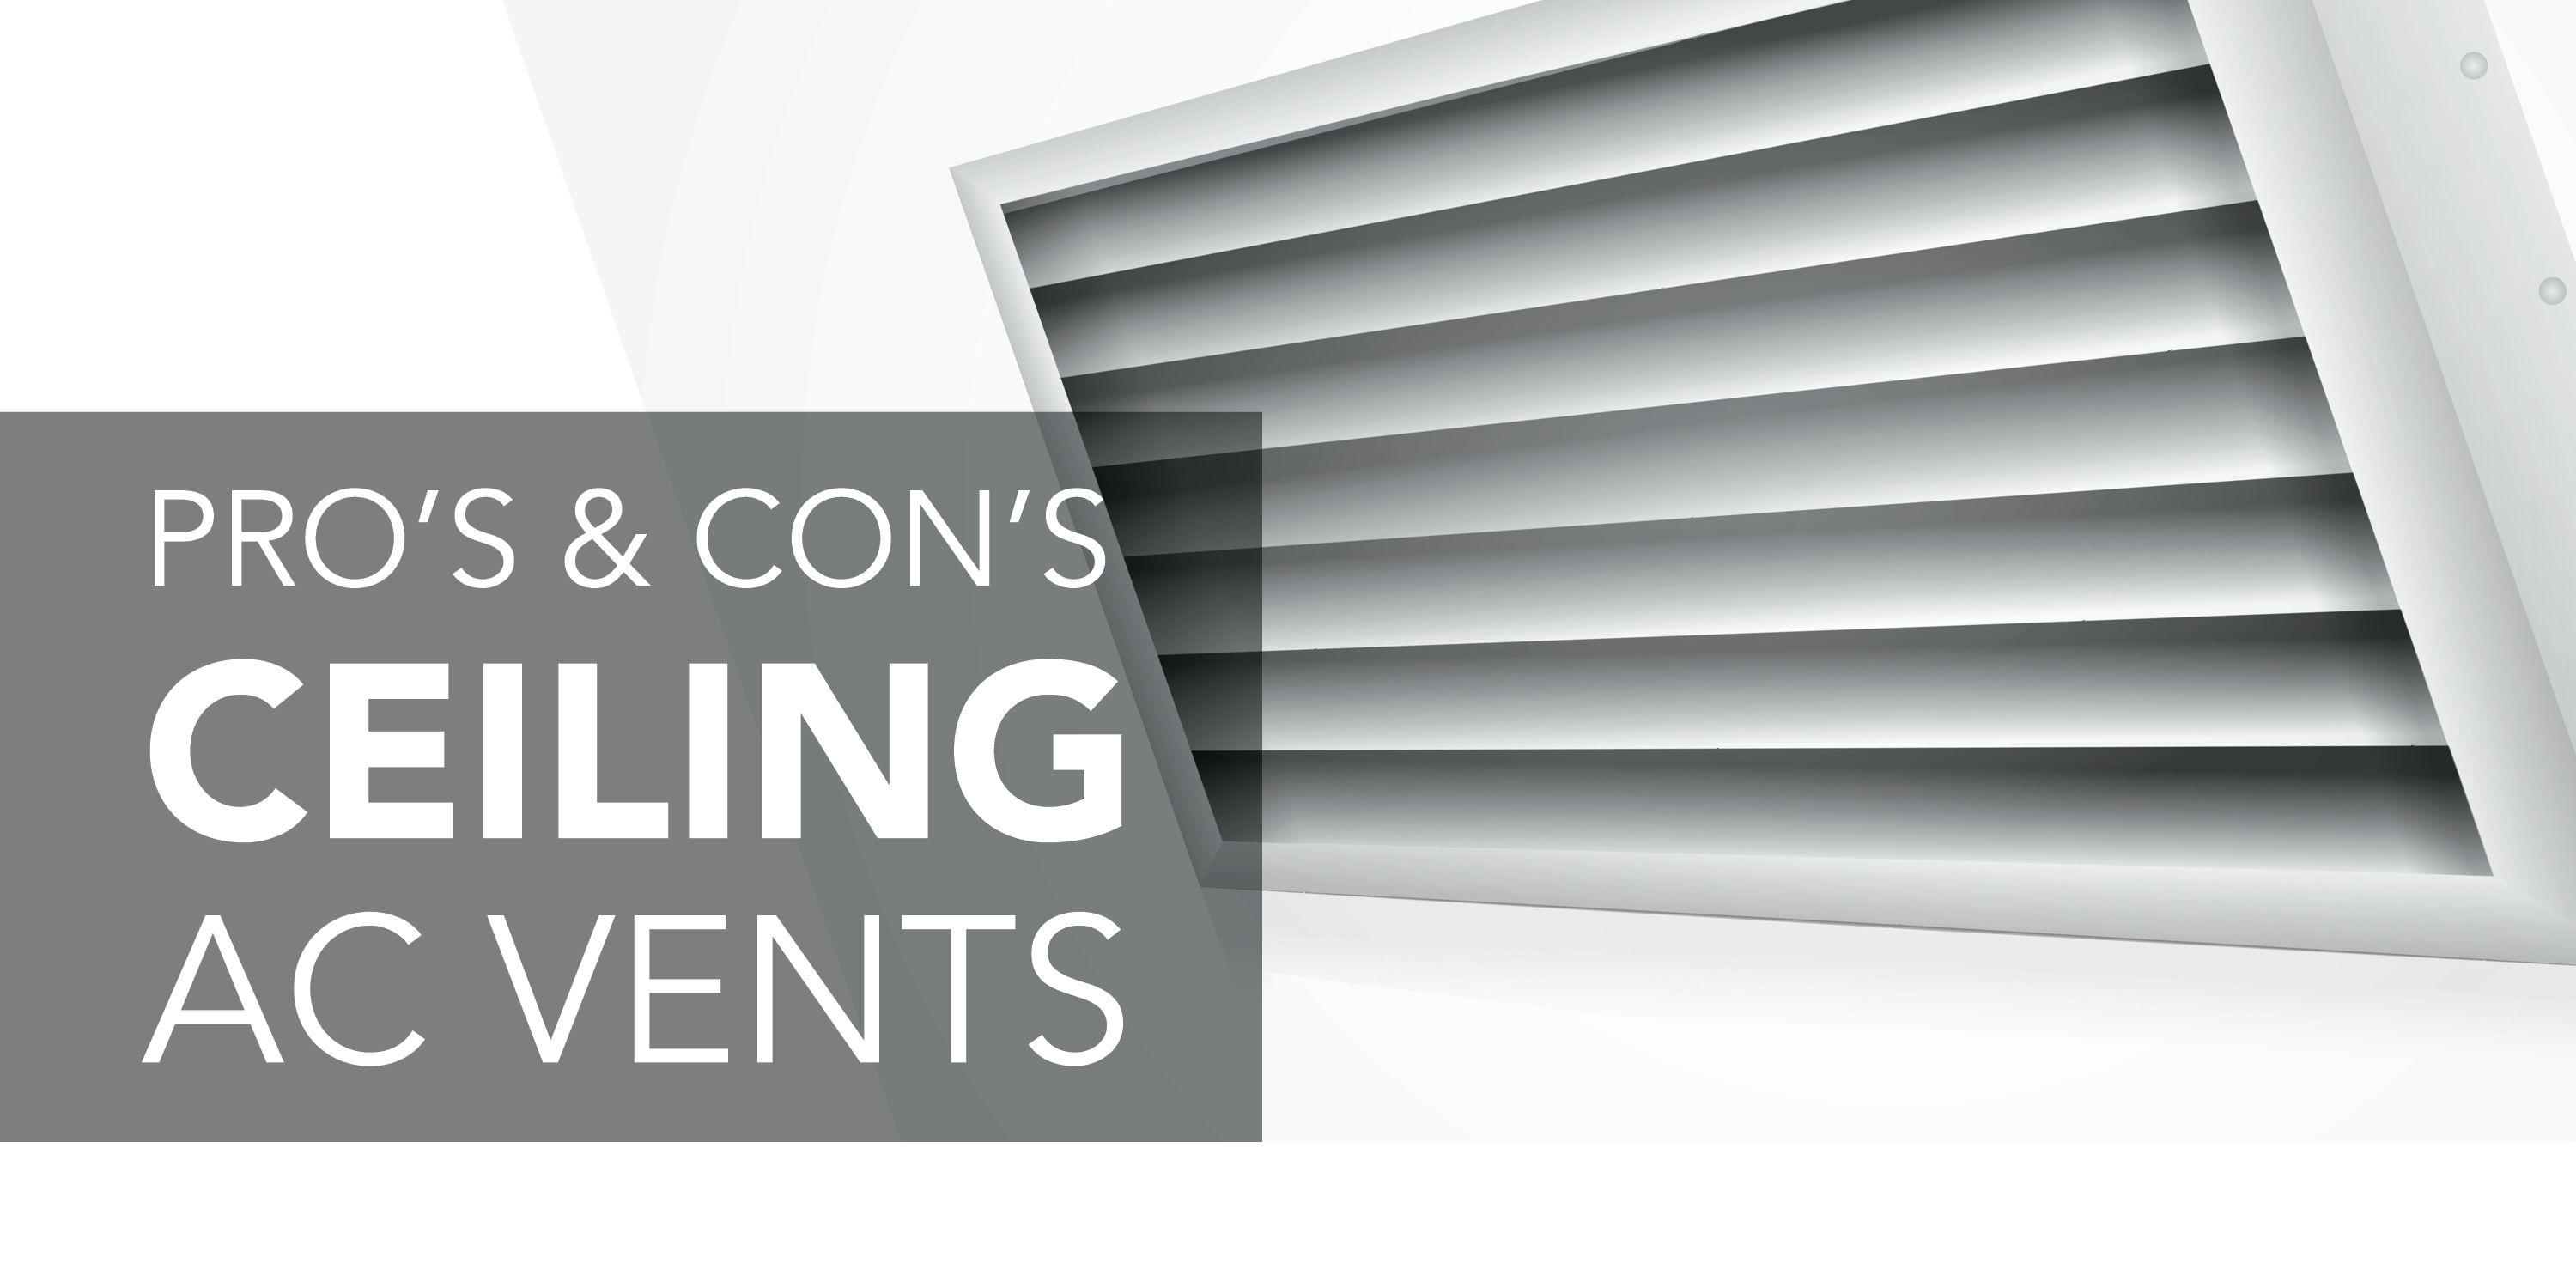 . Ceiling AC Vents  Pros and Cons